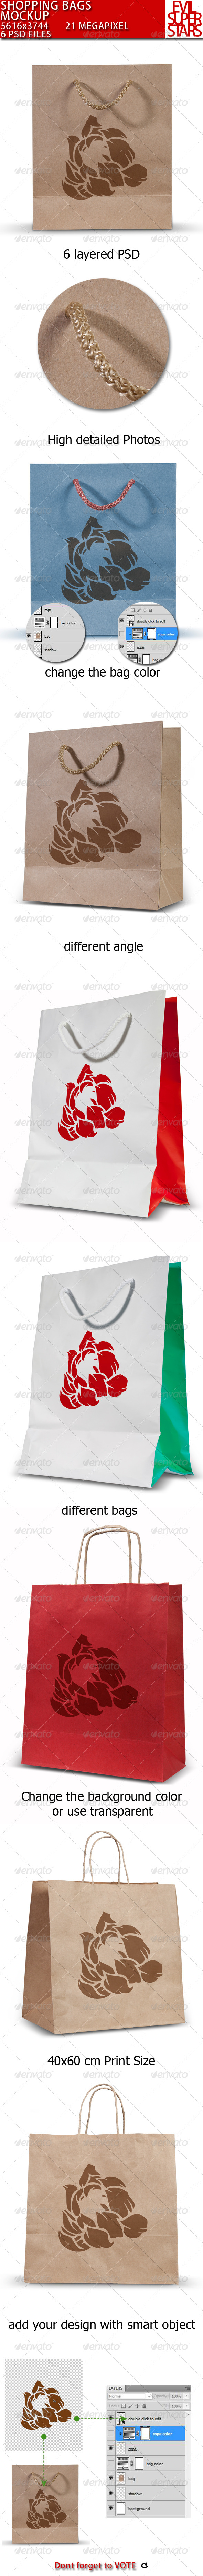 GraphicRiver Shopping Bags Mock-up 5025510